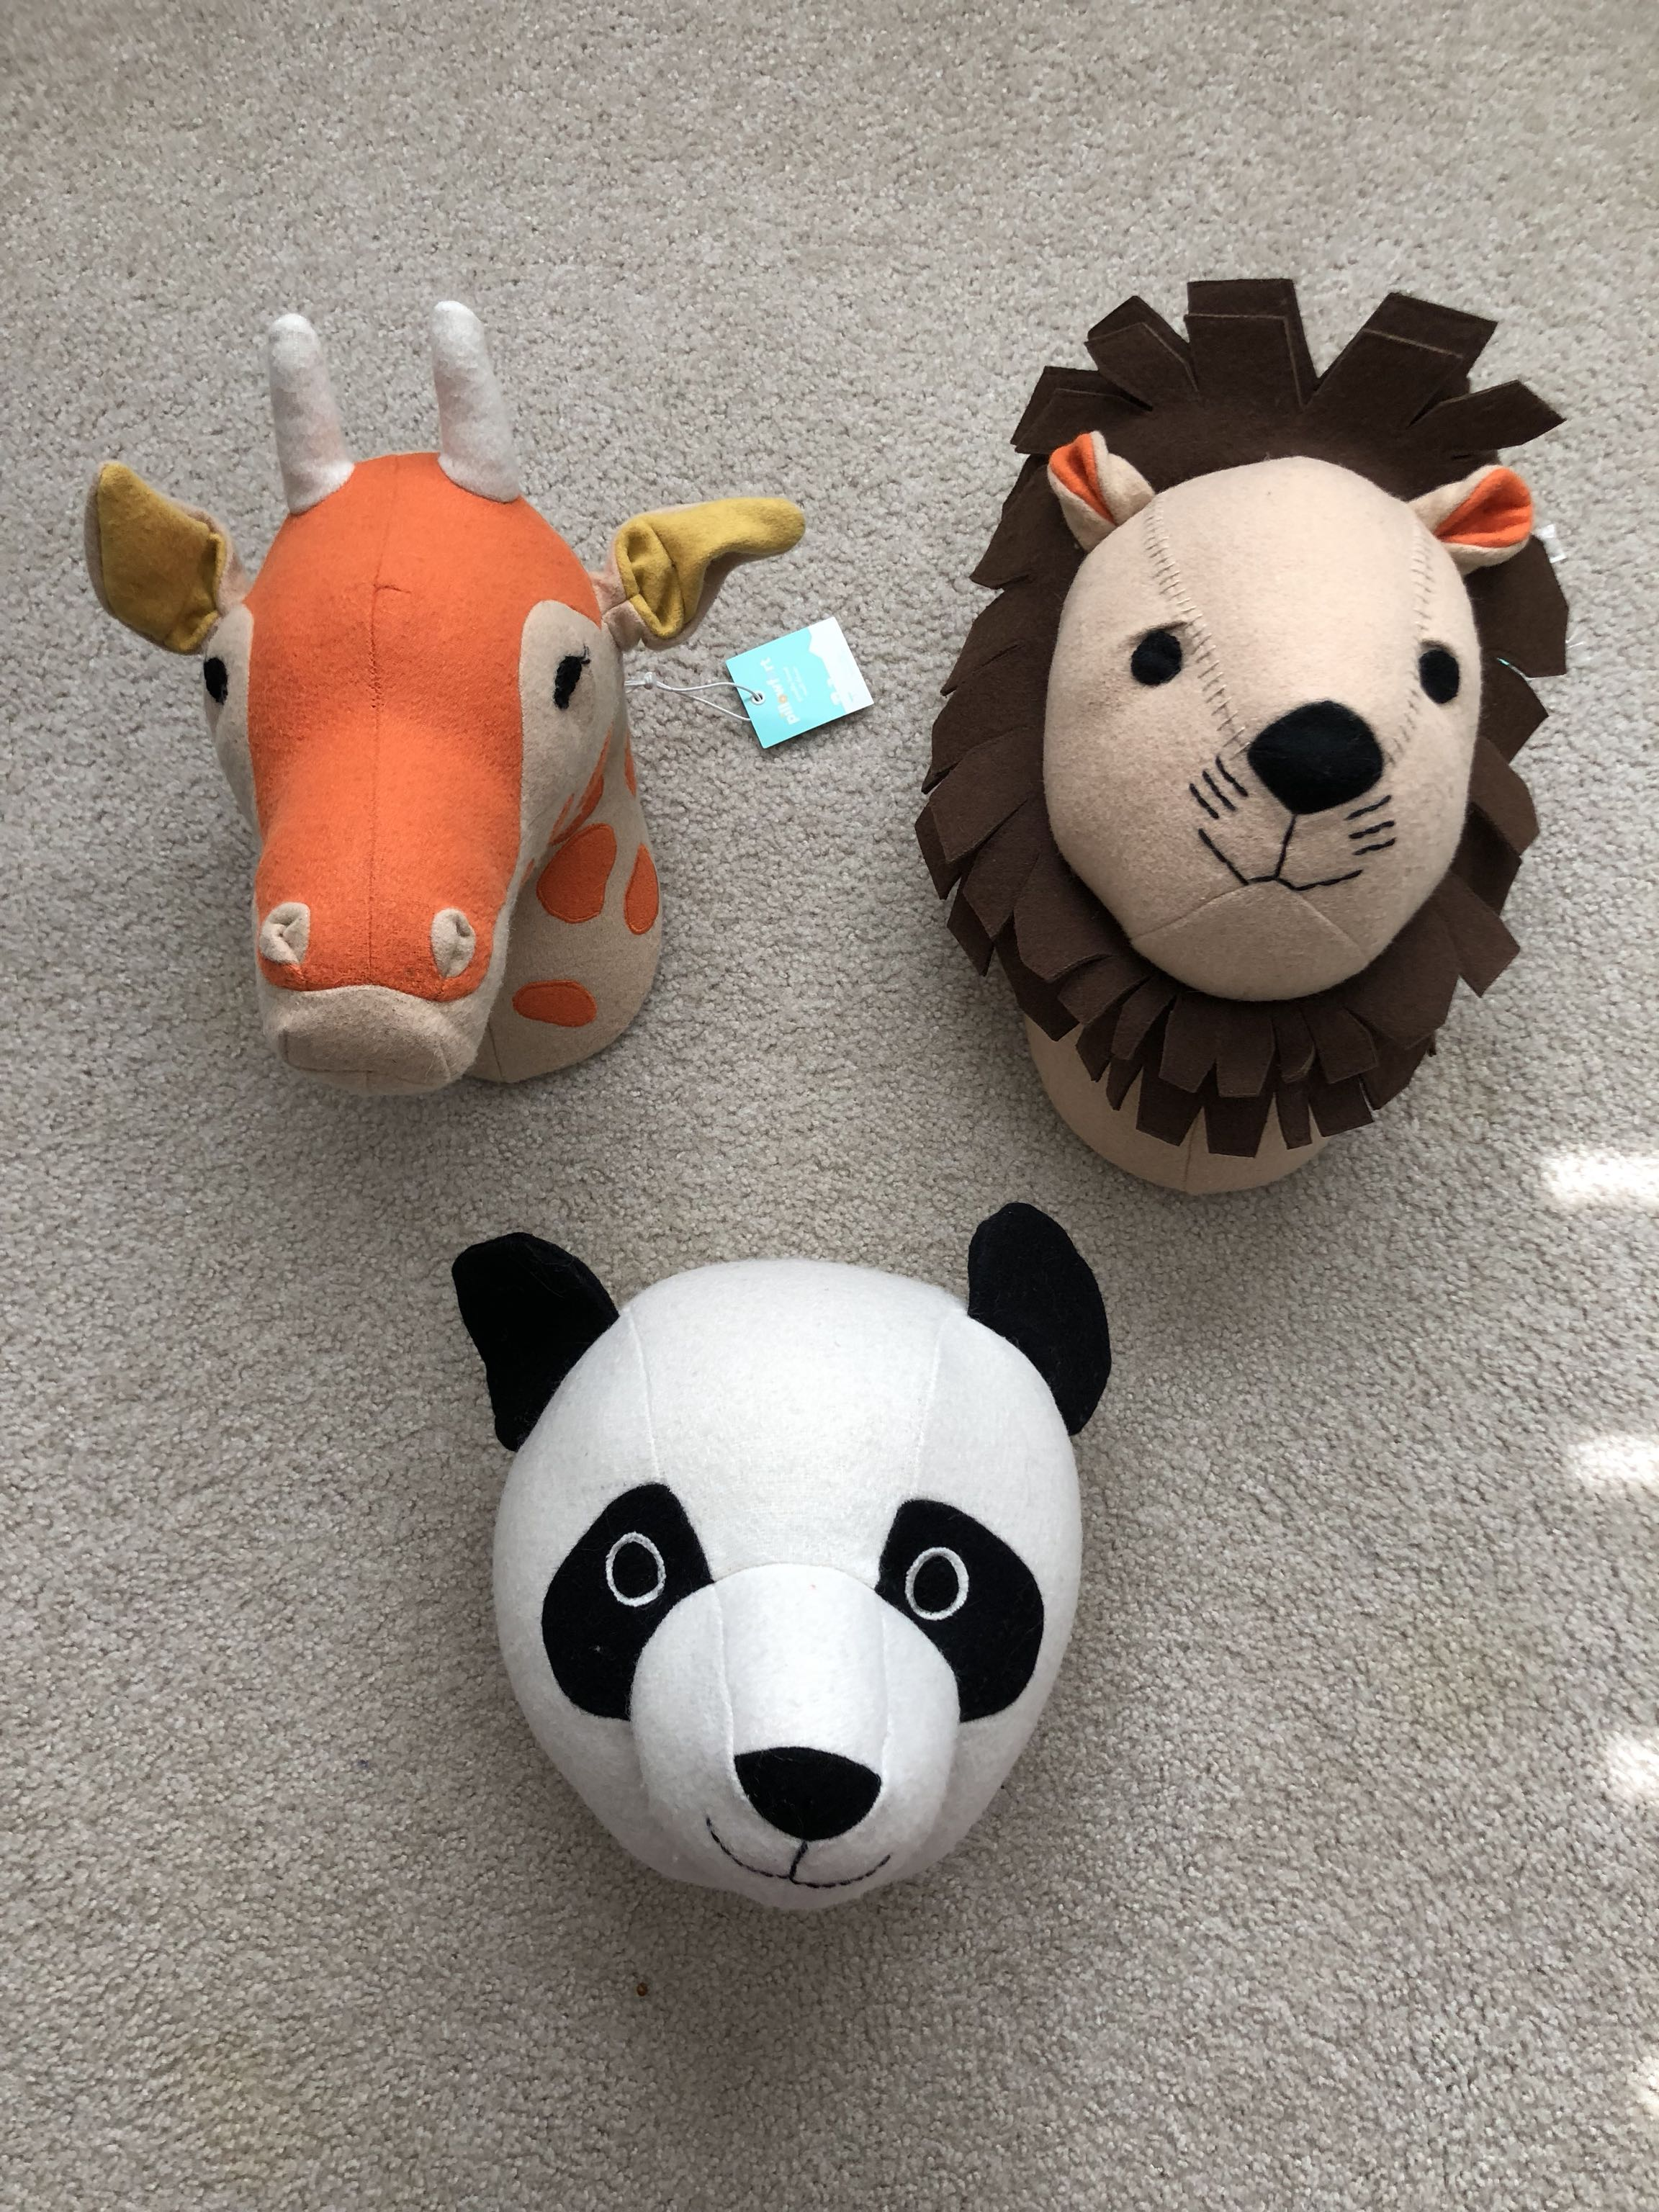 Top Best Pillowfort Stuffed Animal Head Kid Wall Decor Nursery -panda  BZ71